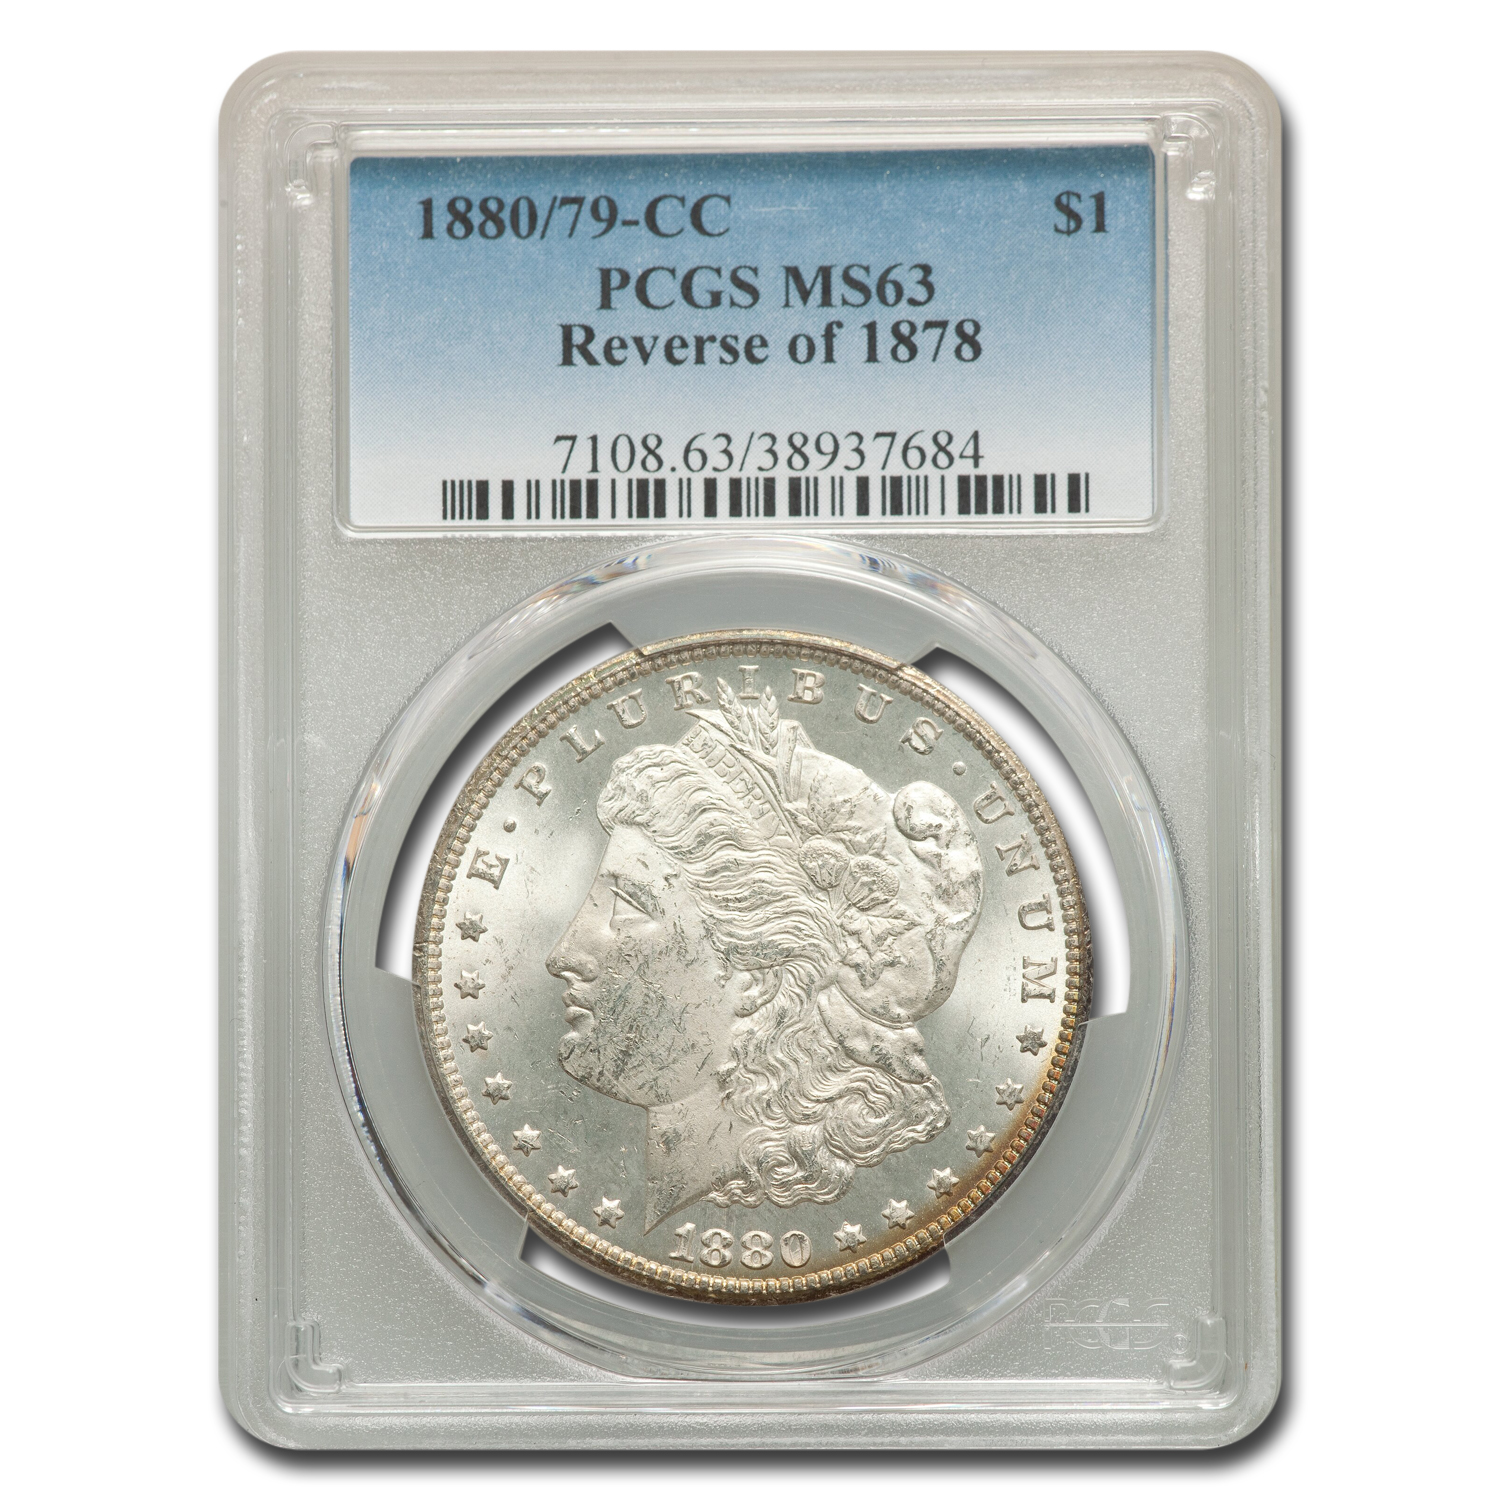 1880/79-CC Morgan Dollar Rev of 78 MS-63 PCGS